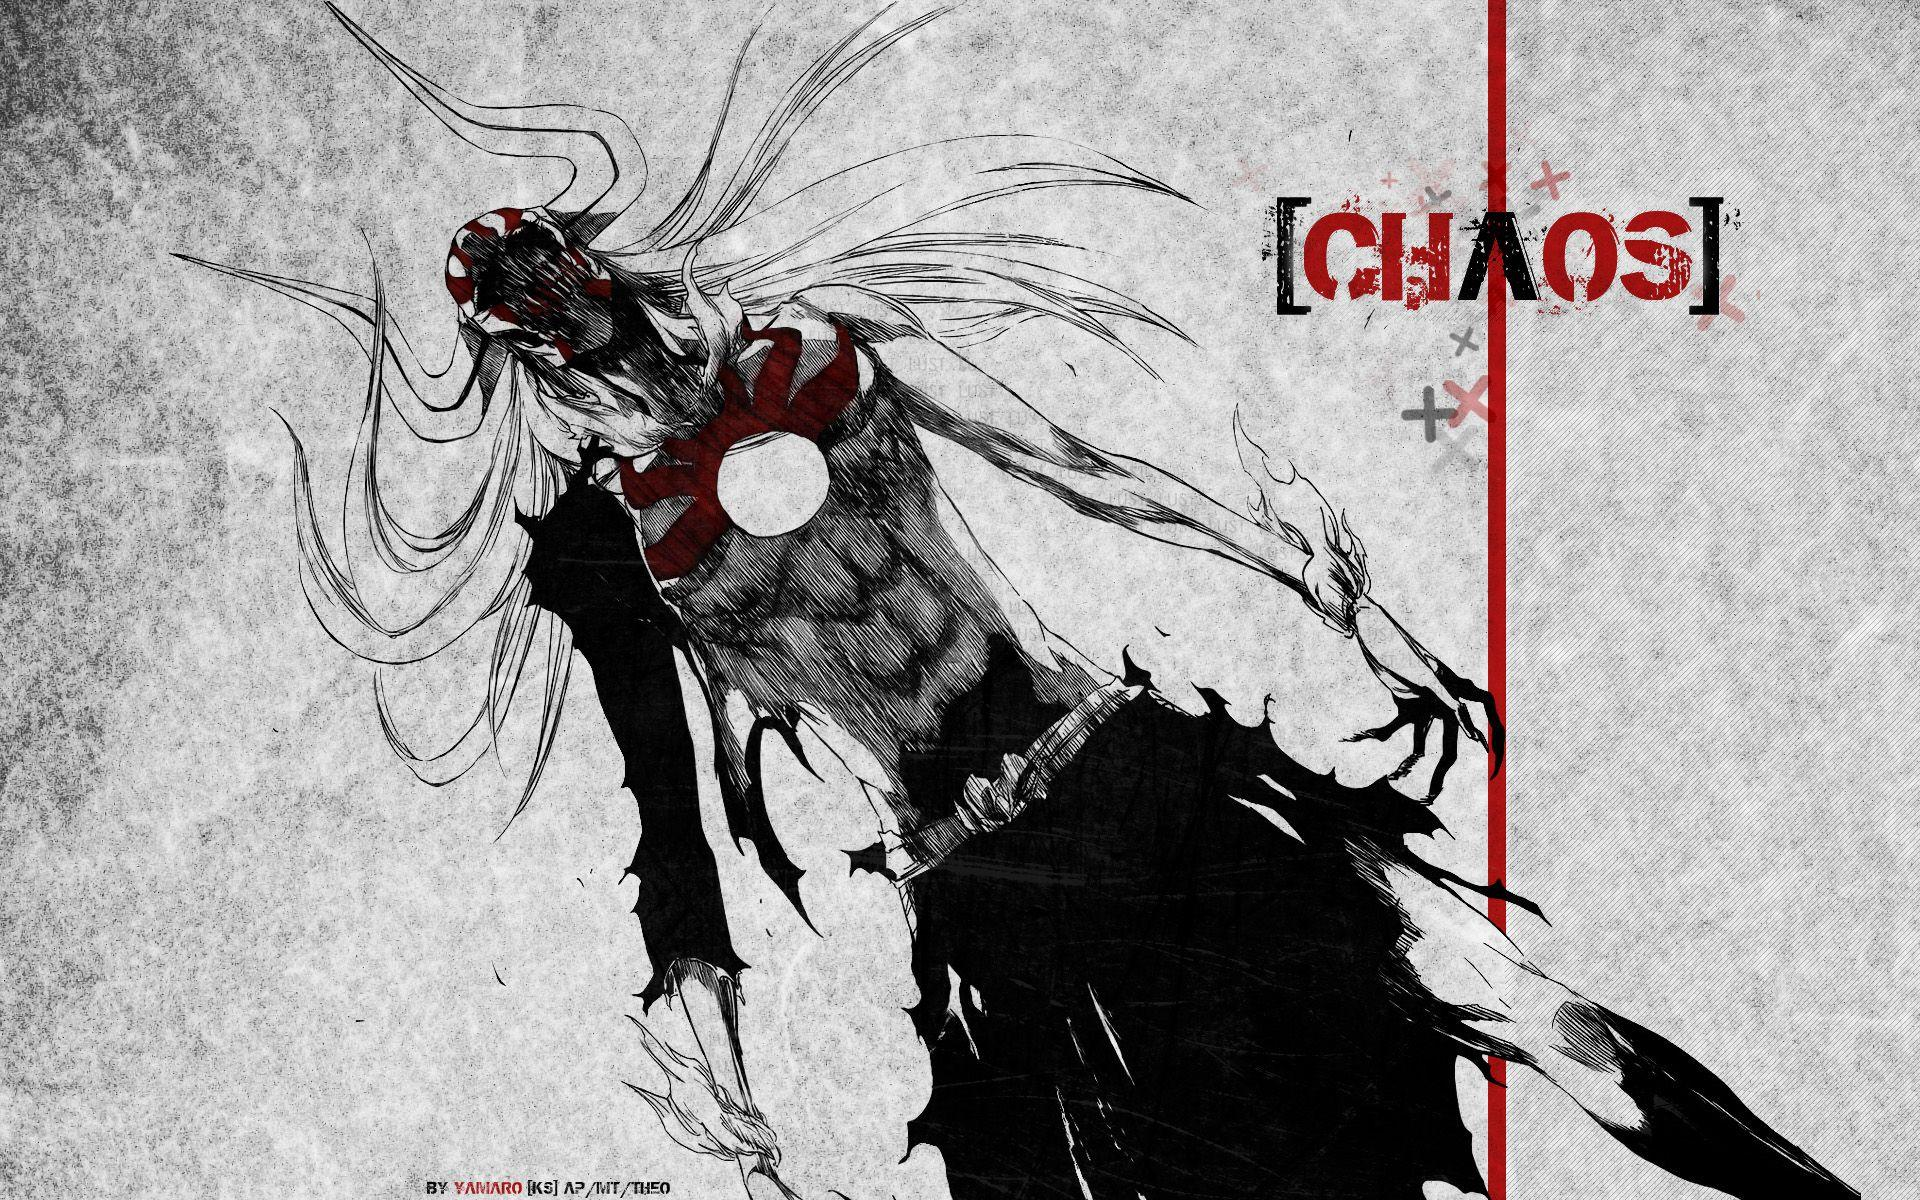 http://wallpapercave.com/wp/4jAr6iB.jpg Ichigo Hollow Wallpaper